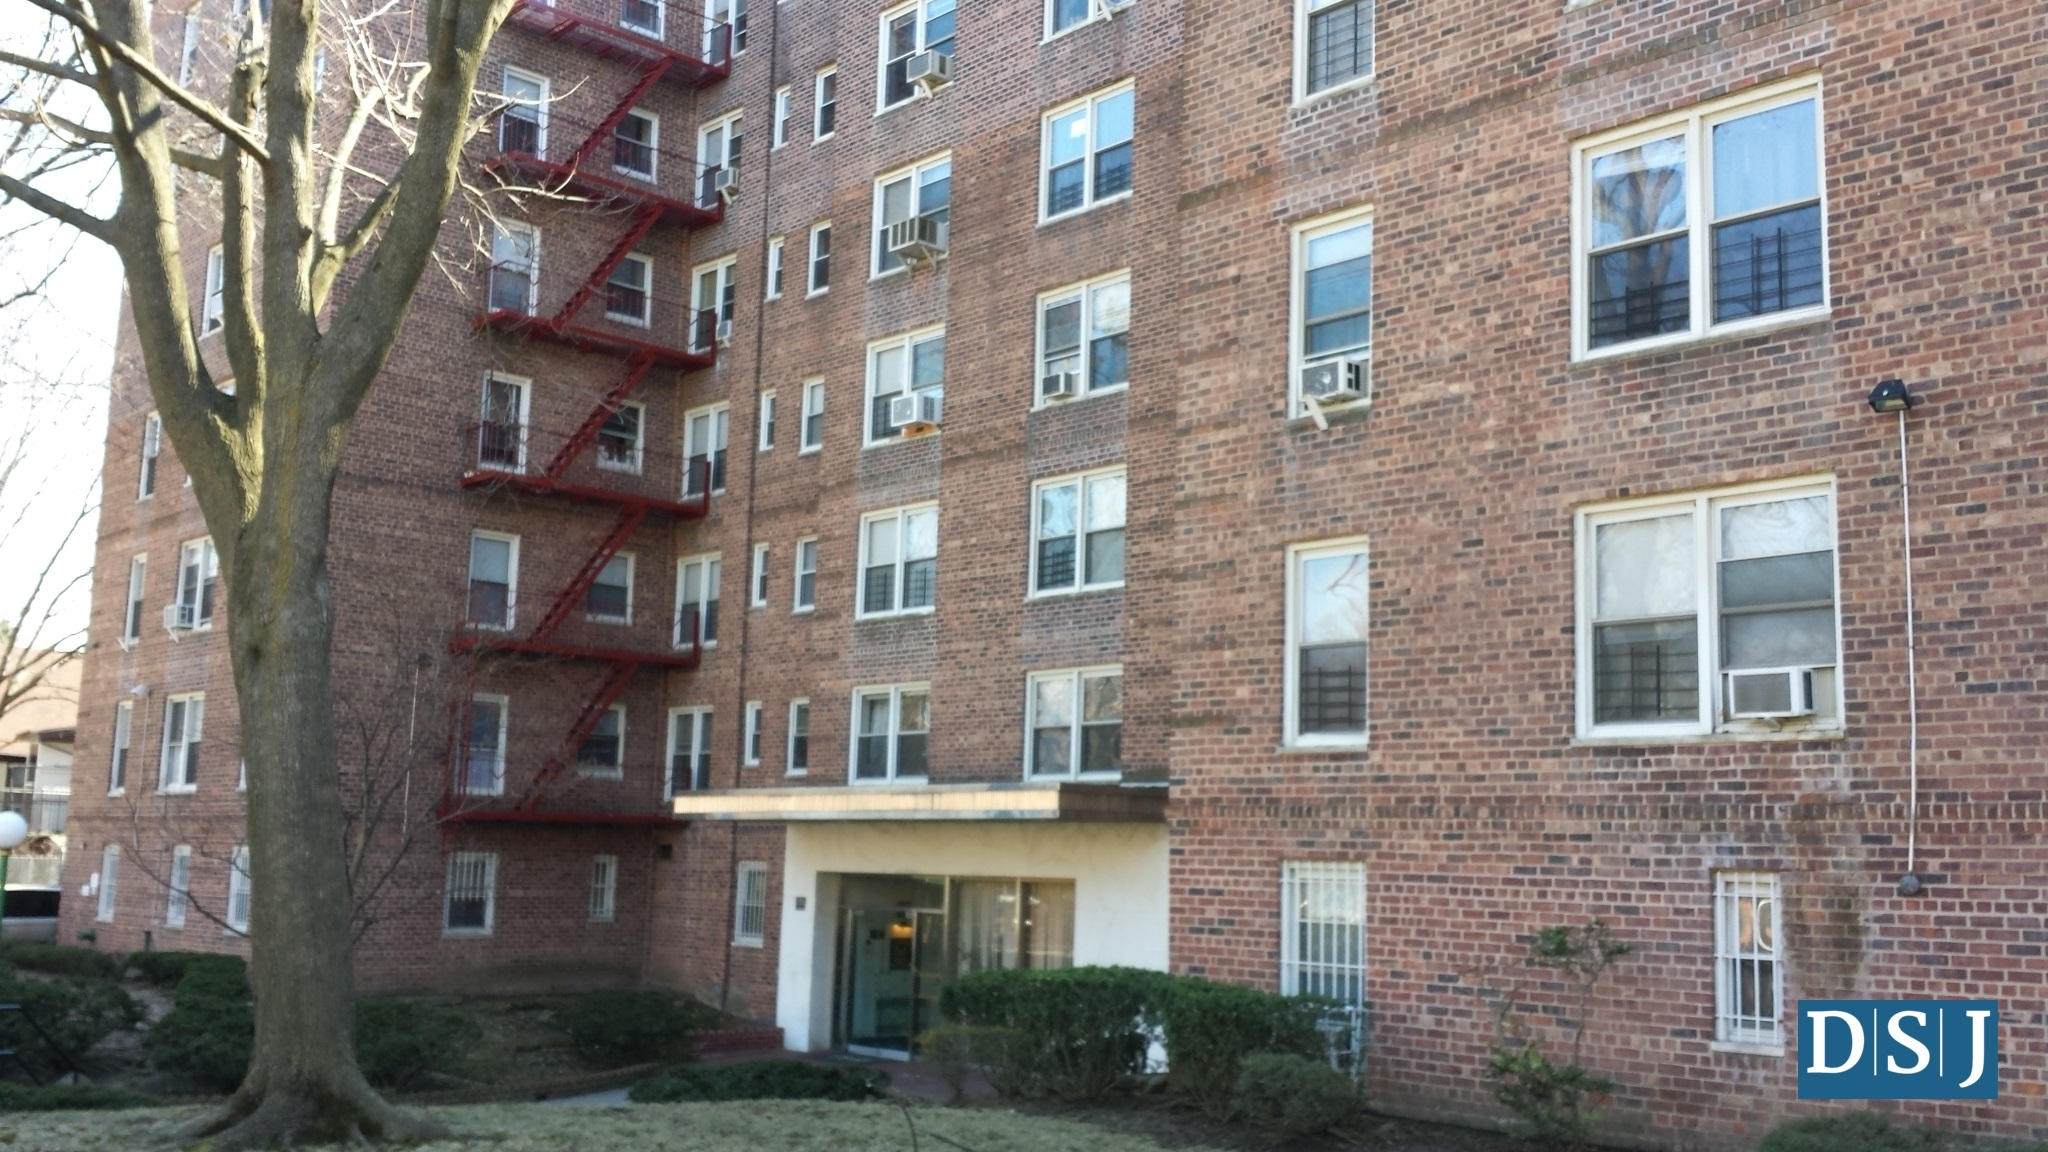 178 60 wexford terrace queens ny 11432 apartable